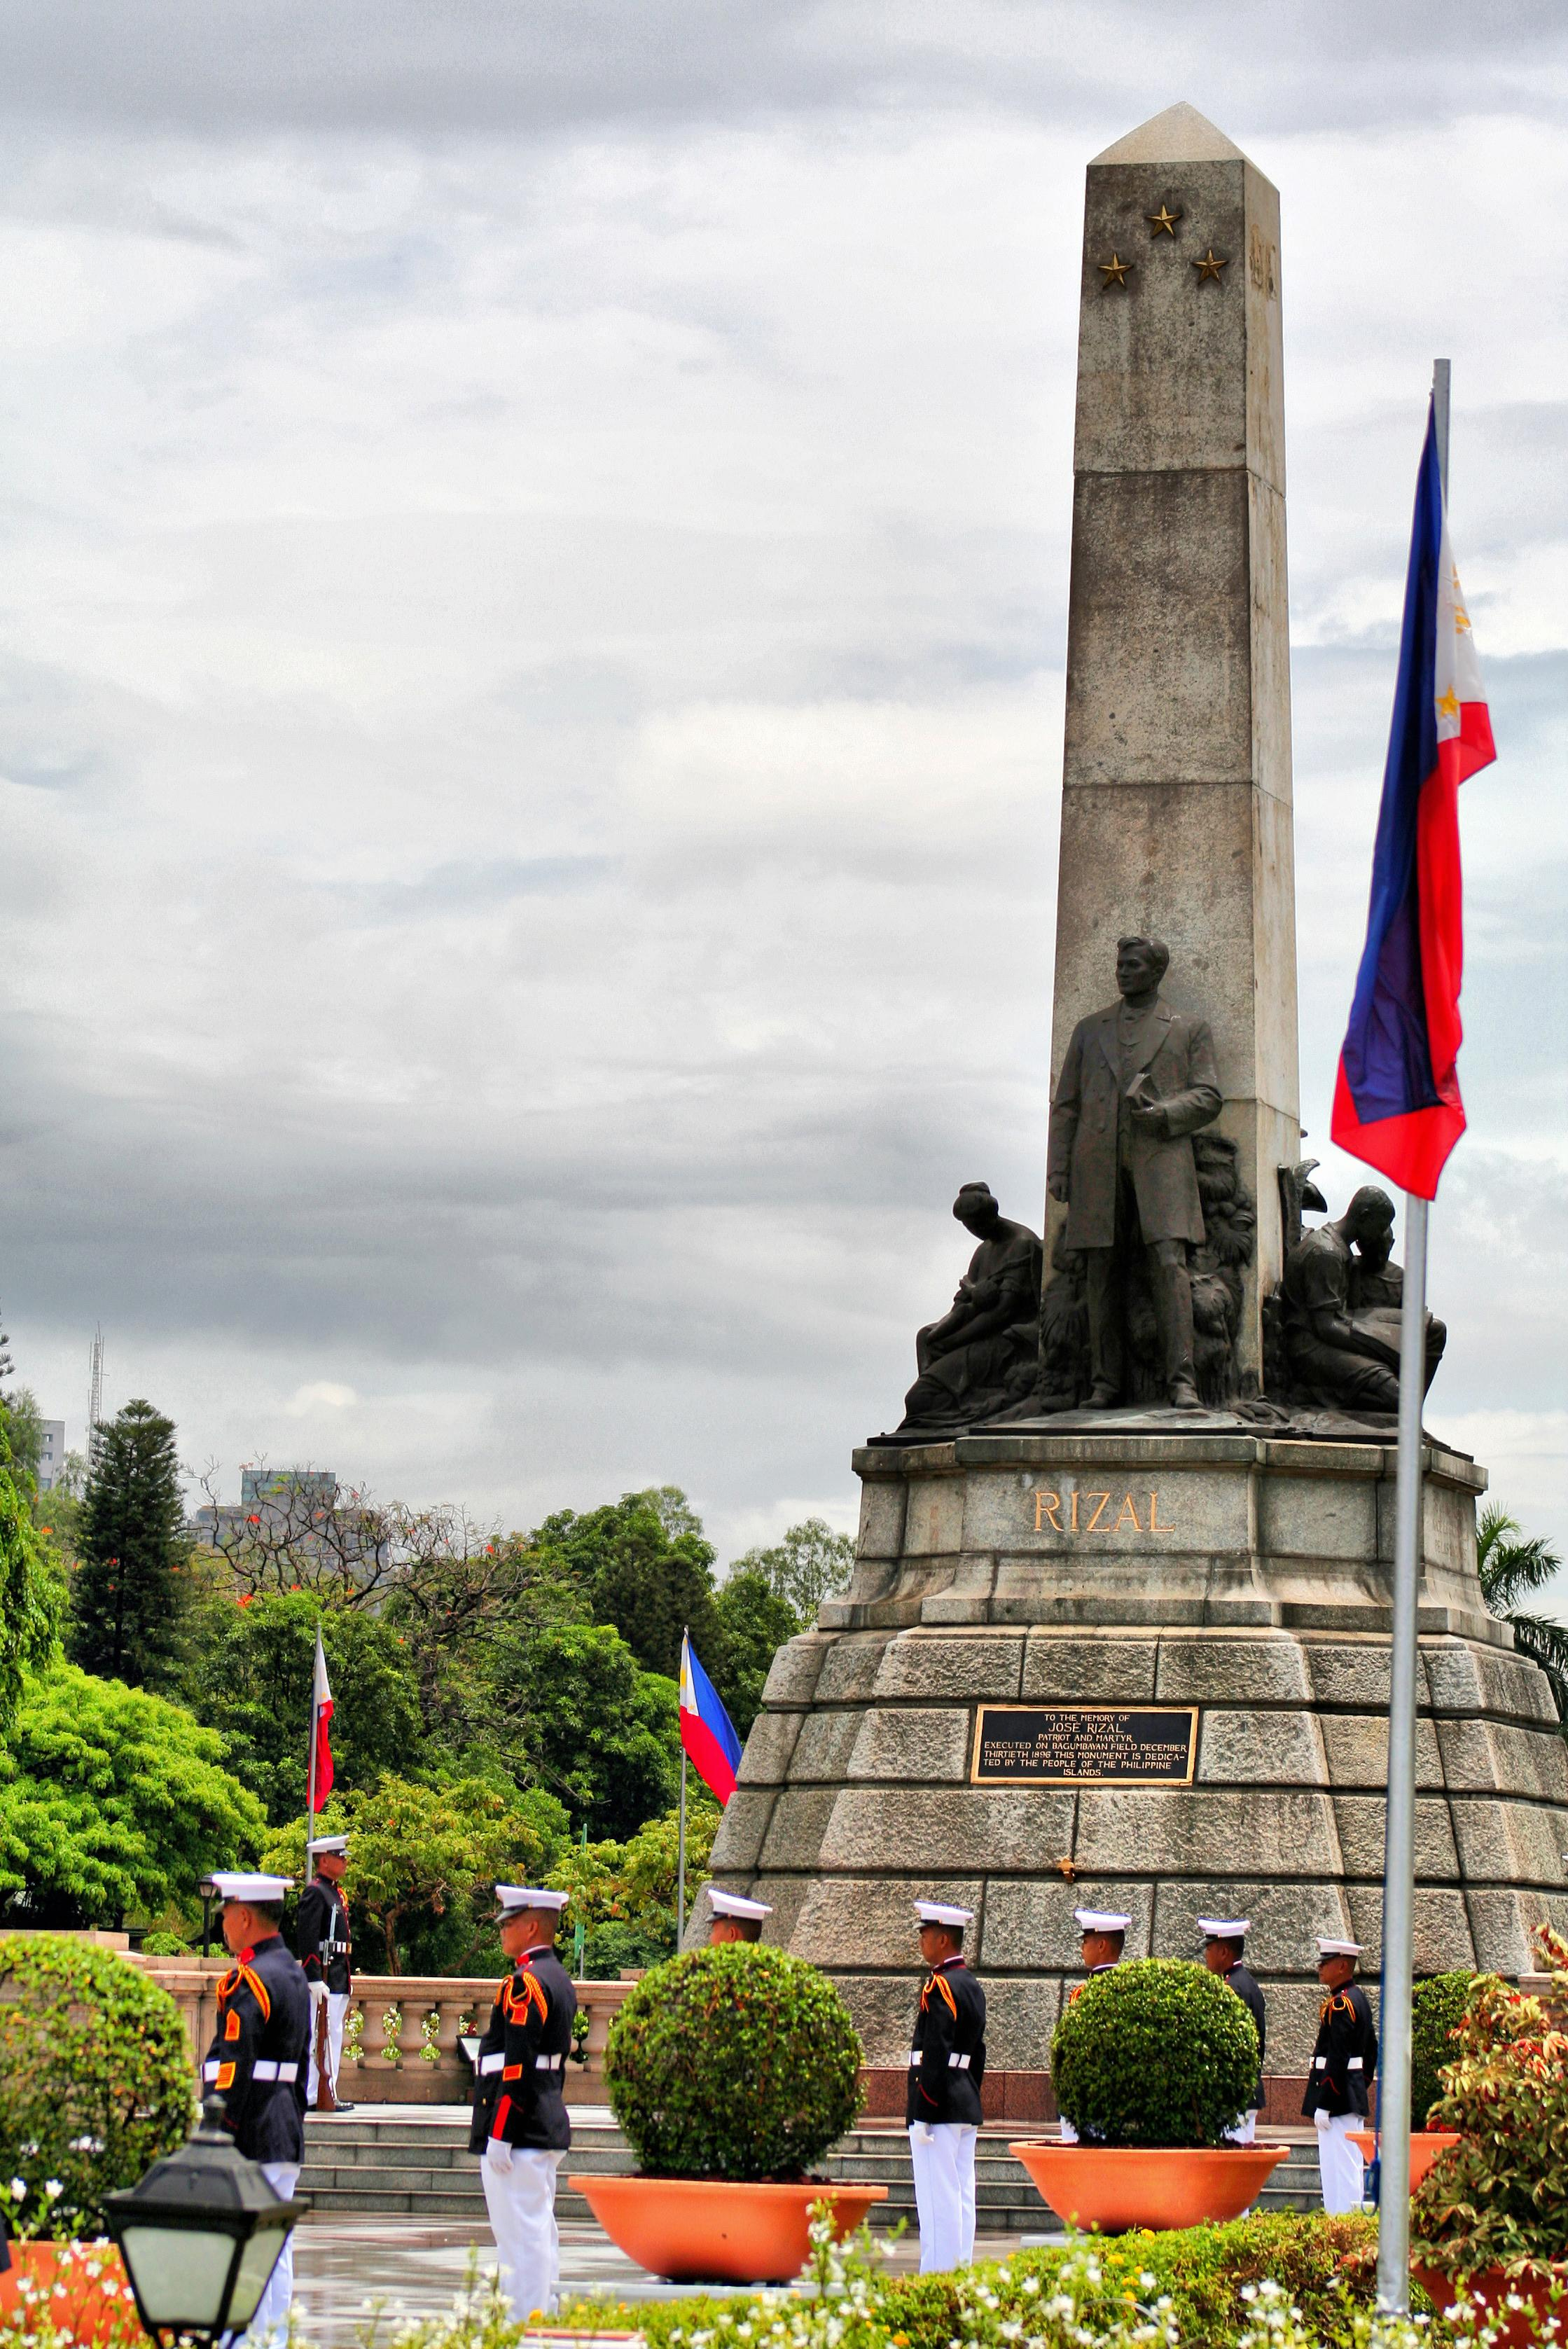 Rizal Monument: Honoring the National Hero of the Philippines